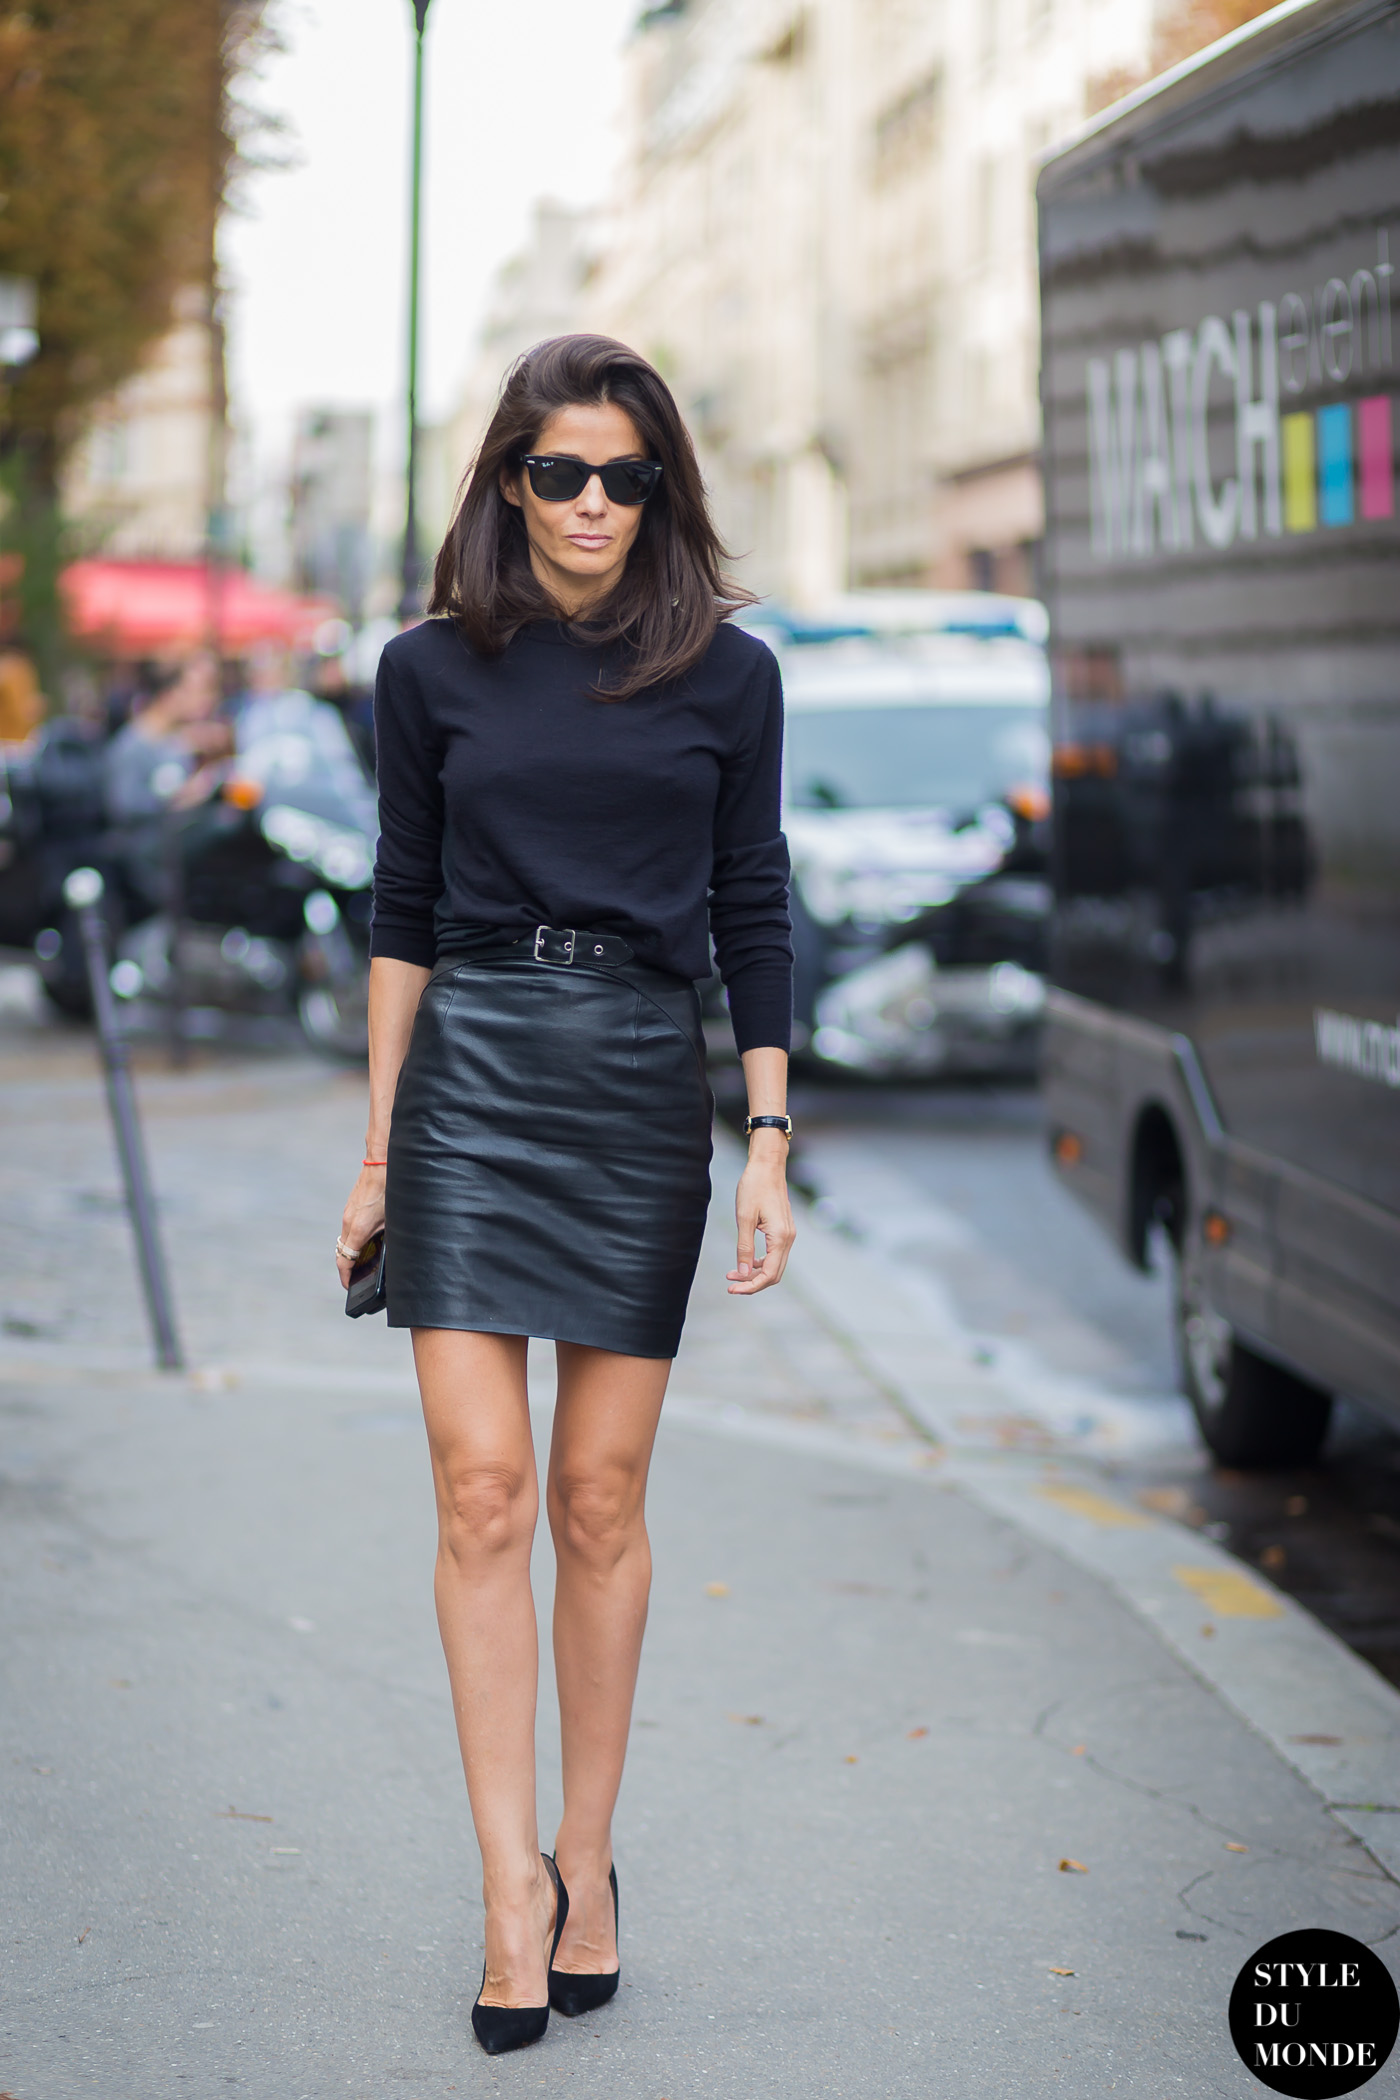 Barbara Martelo Street Style Street Fashion Streetsnaps by STYLEDUMONDE Street Style Fashion Blog